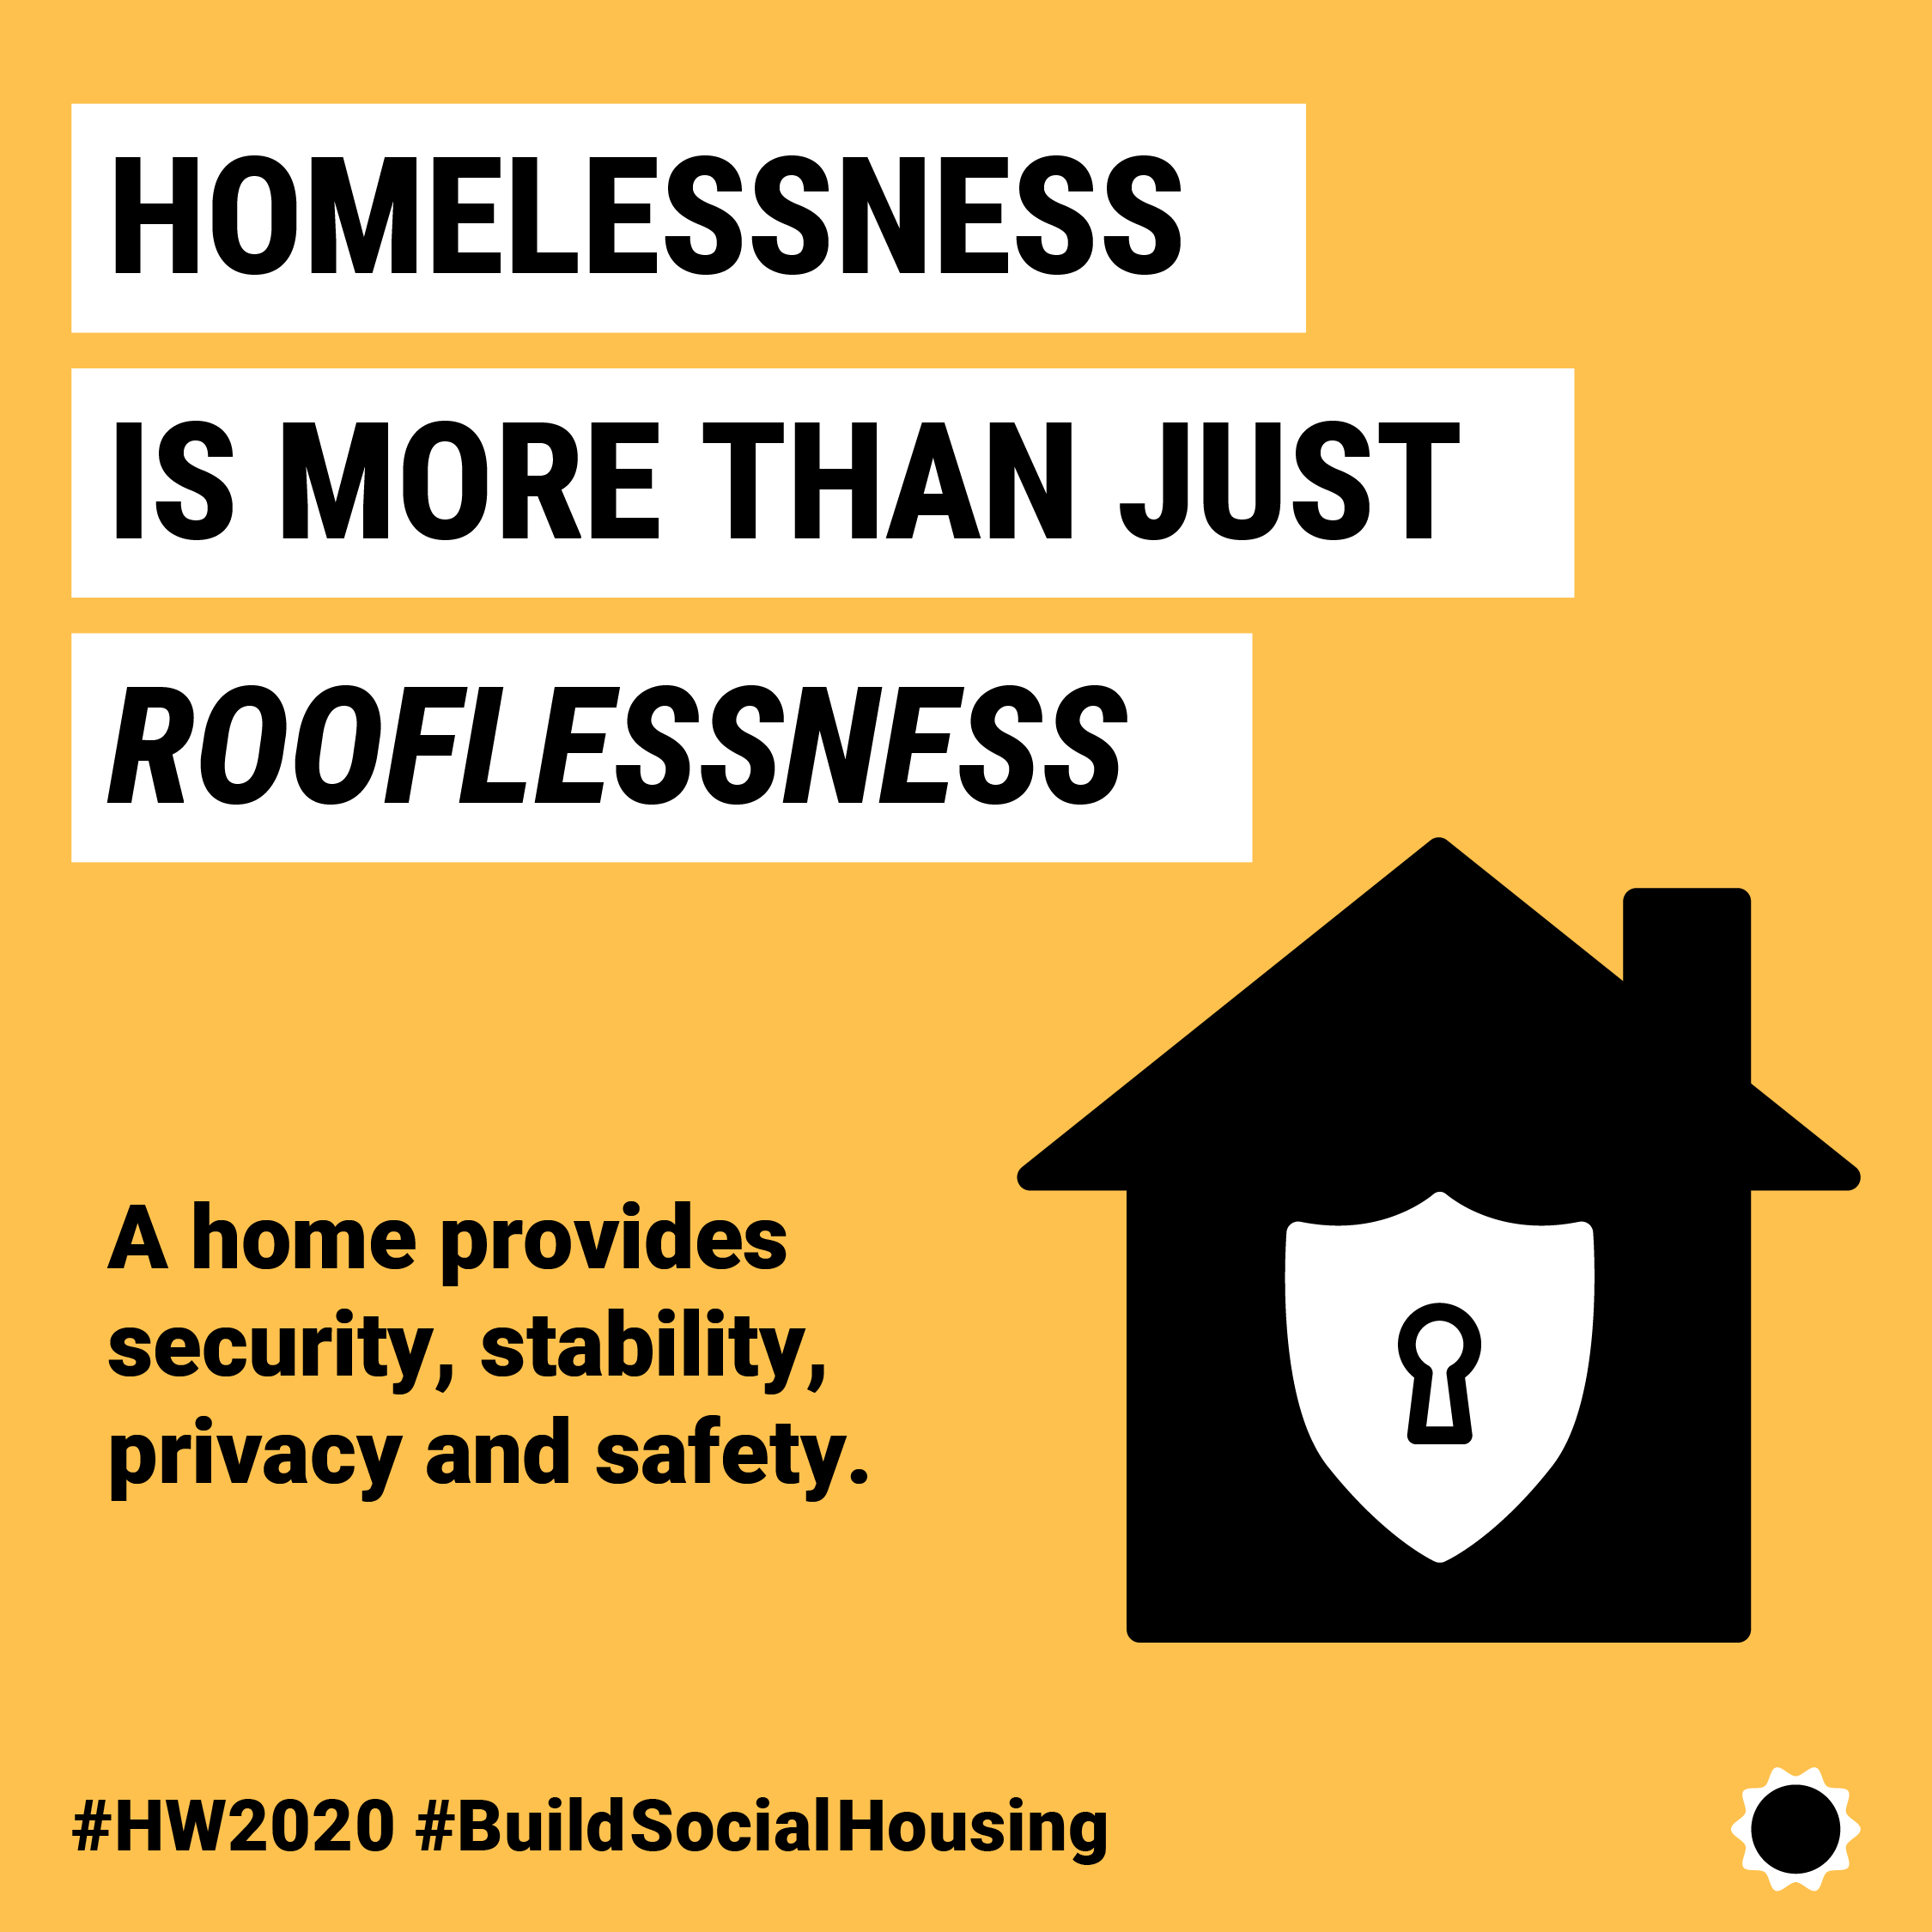 Homelessness is more than just rooflessness. A home provides a sense of security, stability, privacy and safety